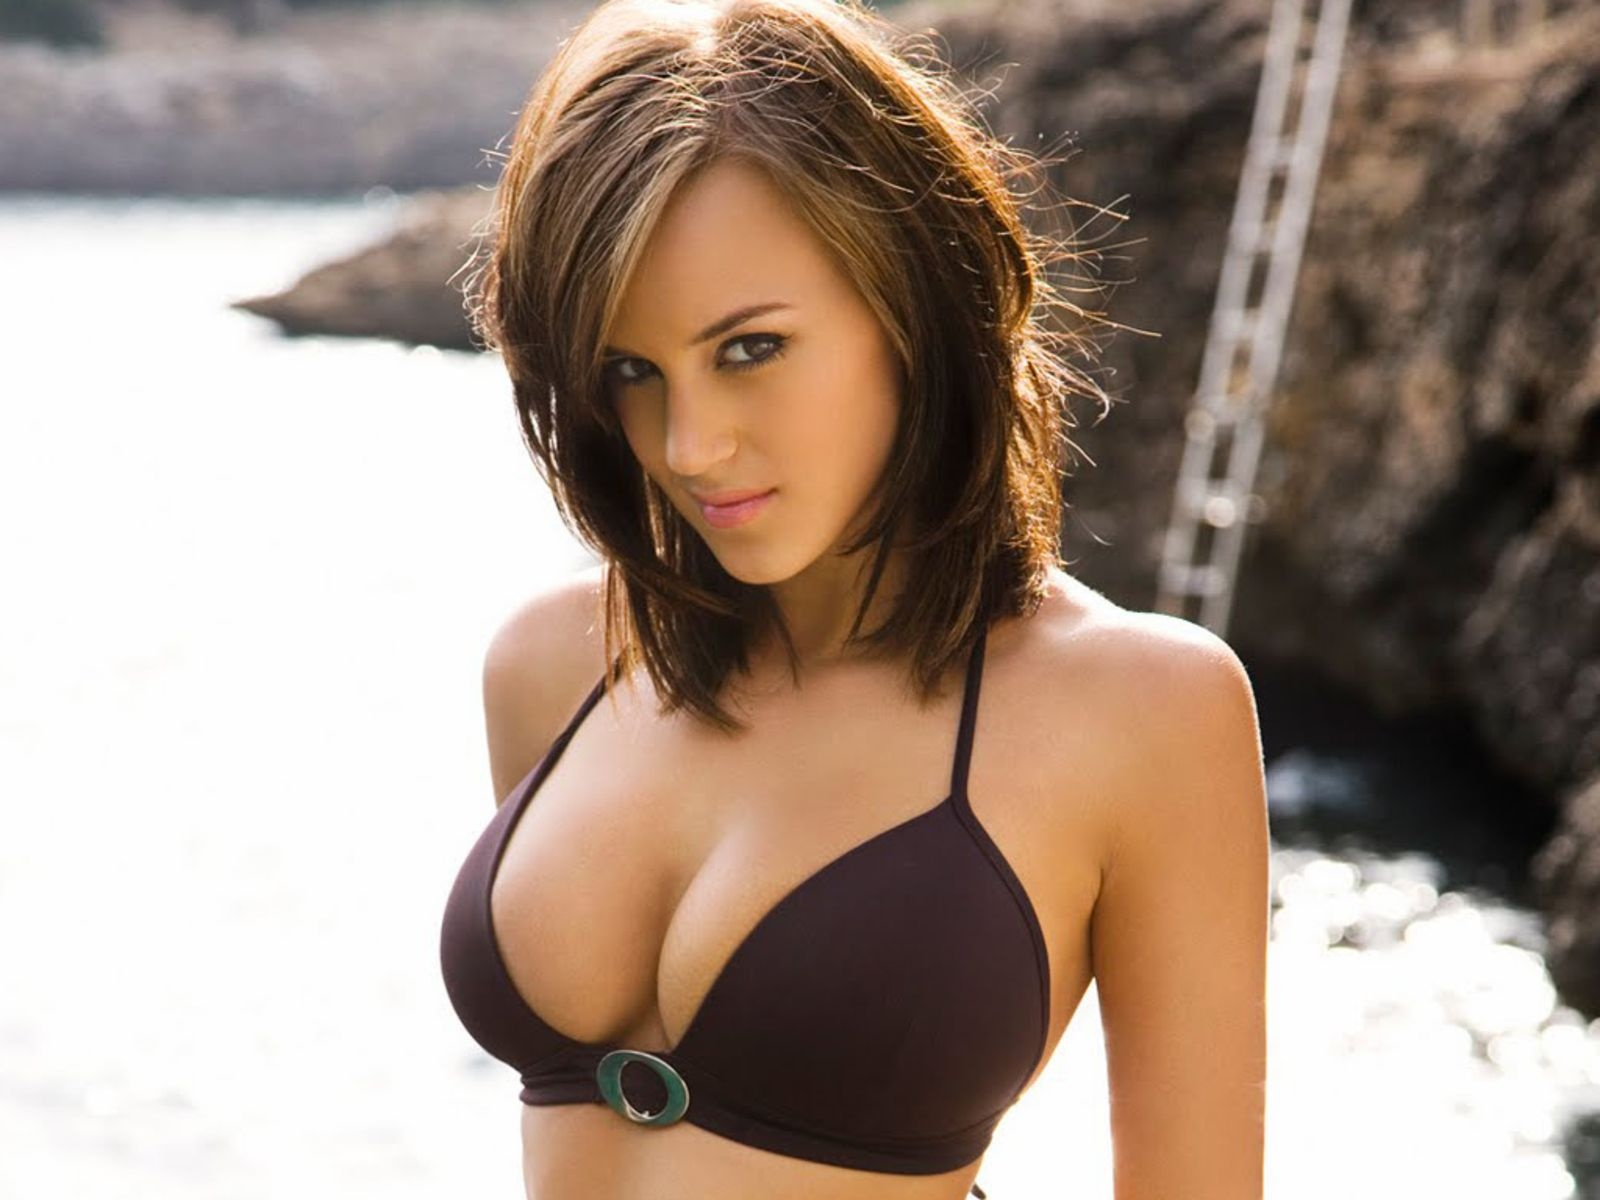 Rosie jones video'ları. rosie jones iyi enytryler. rosie jones resimle